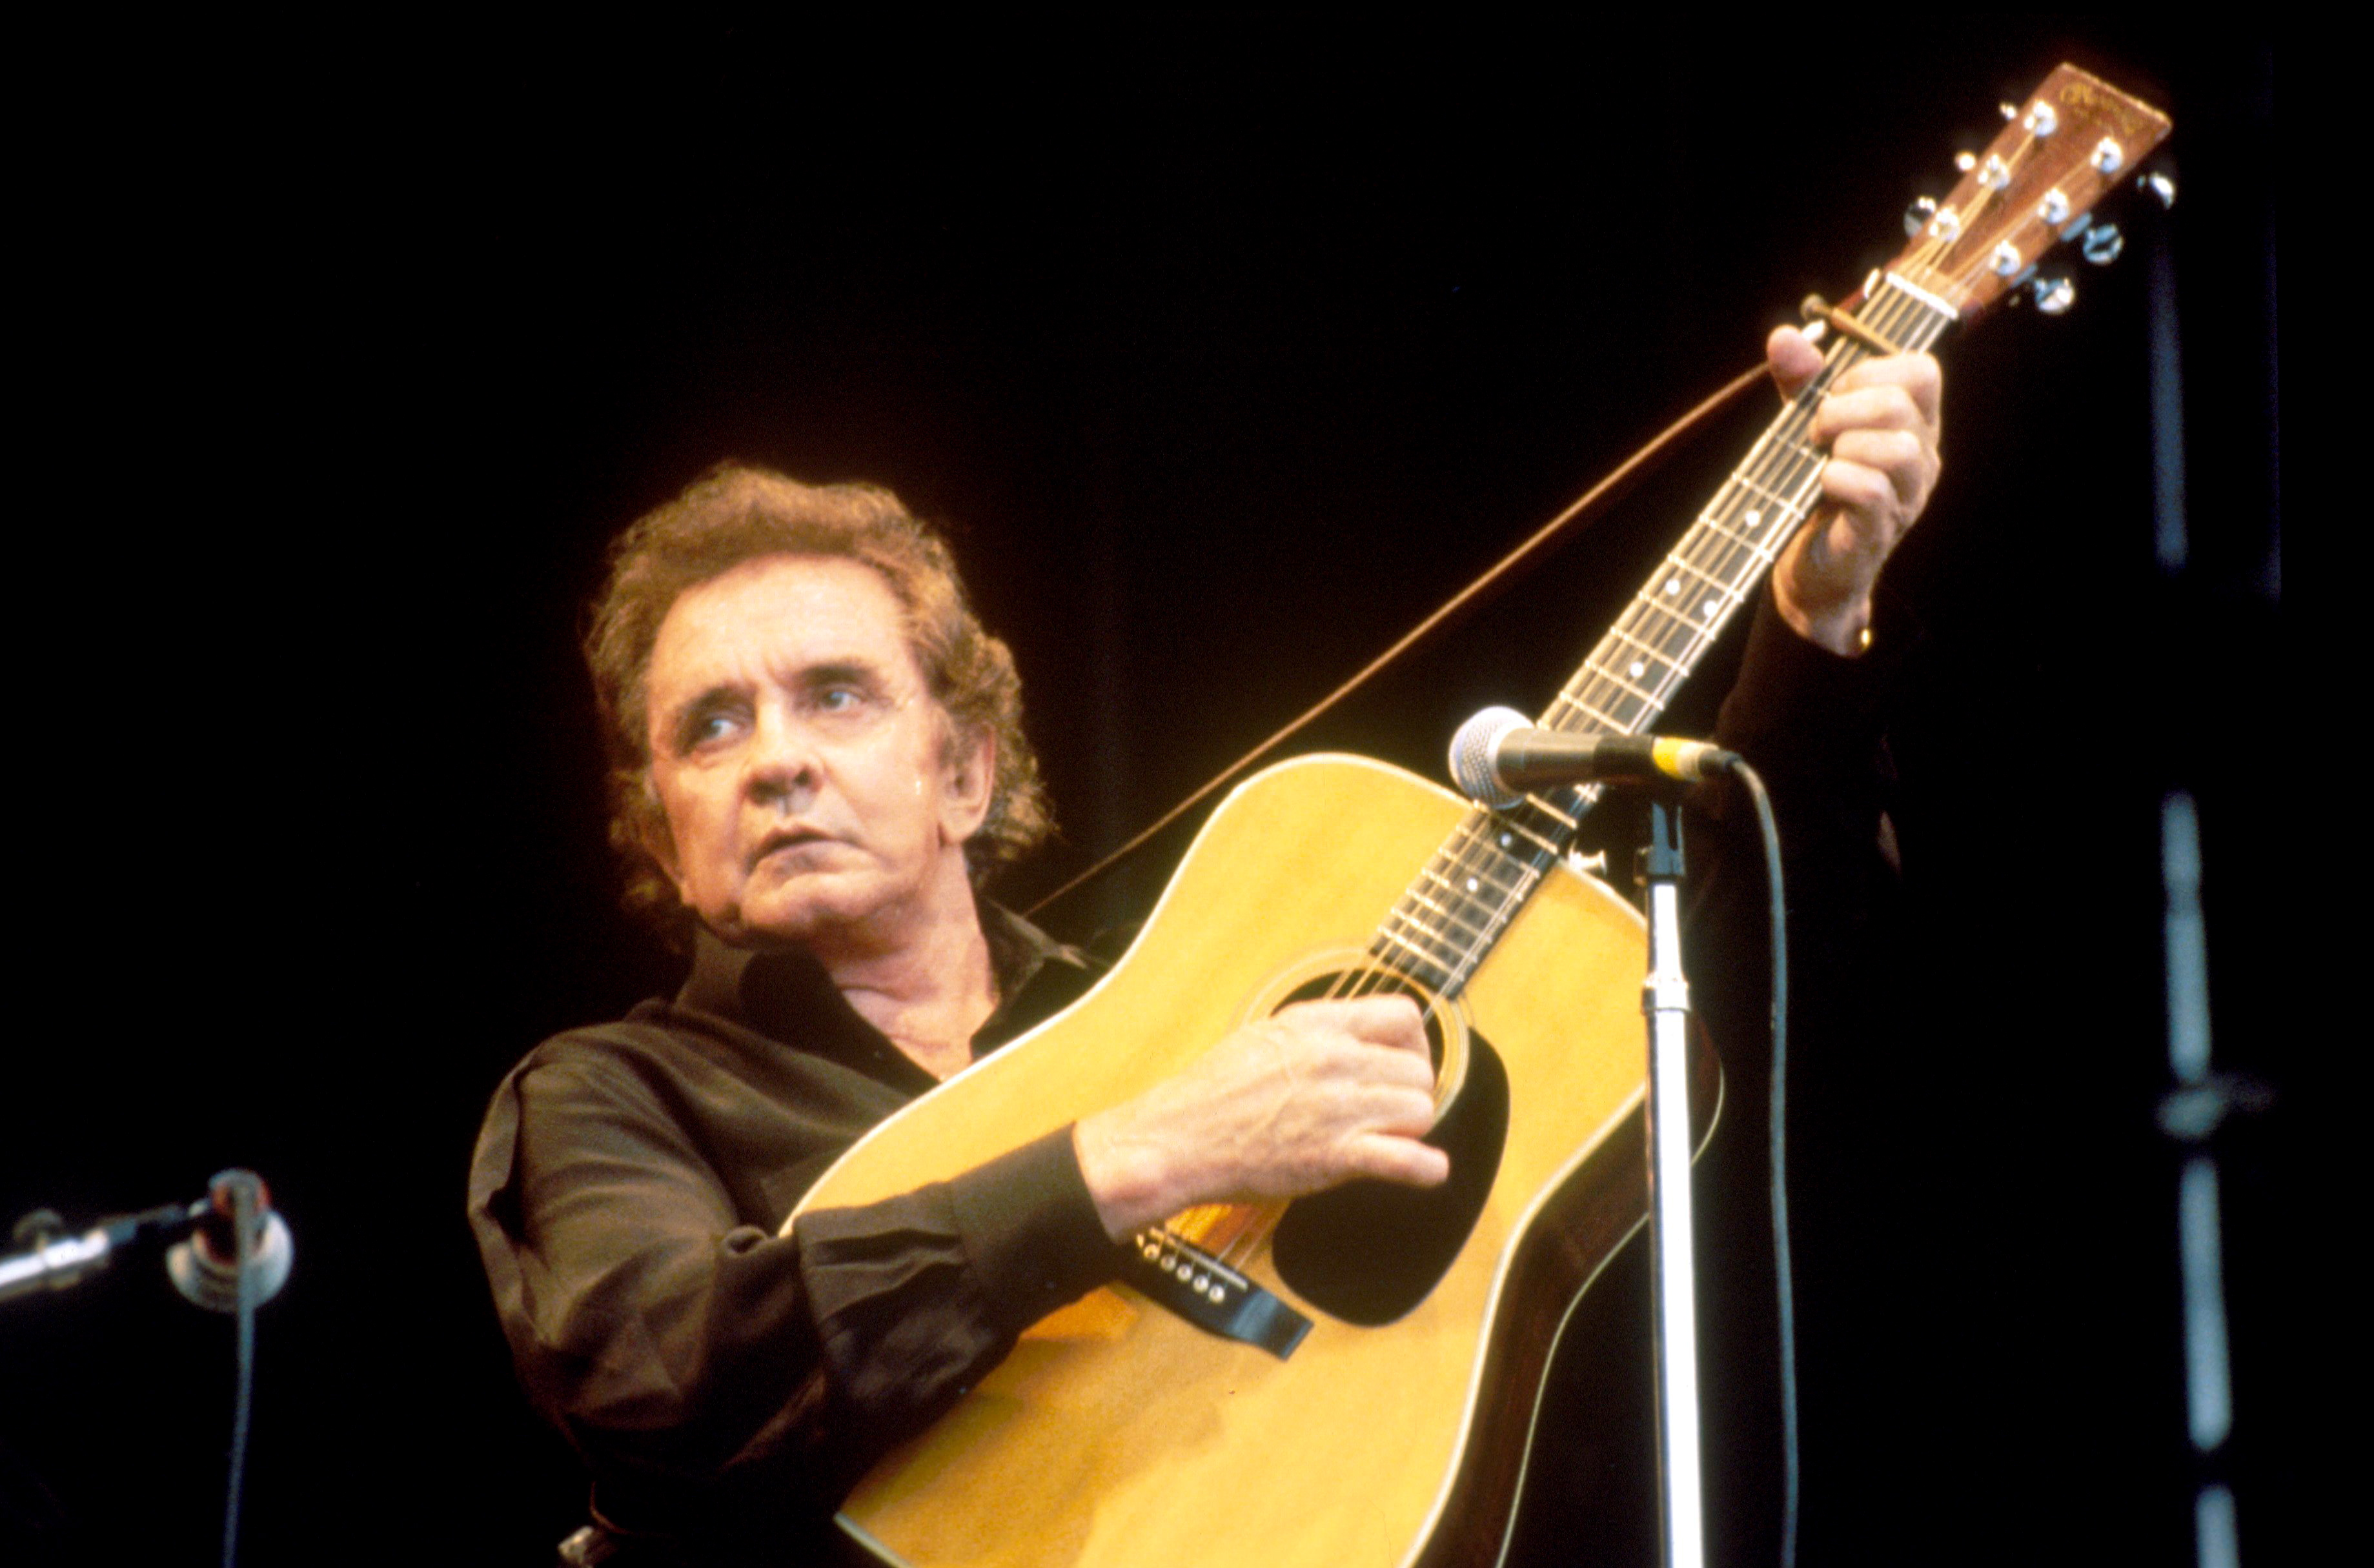 Johnny Cash's 'American Recordings' to Be Released as Vinyl Box Set